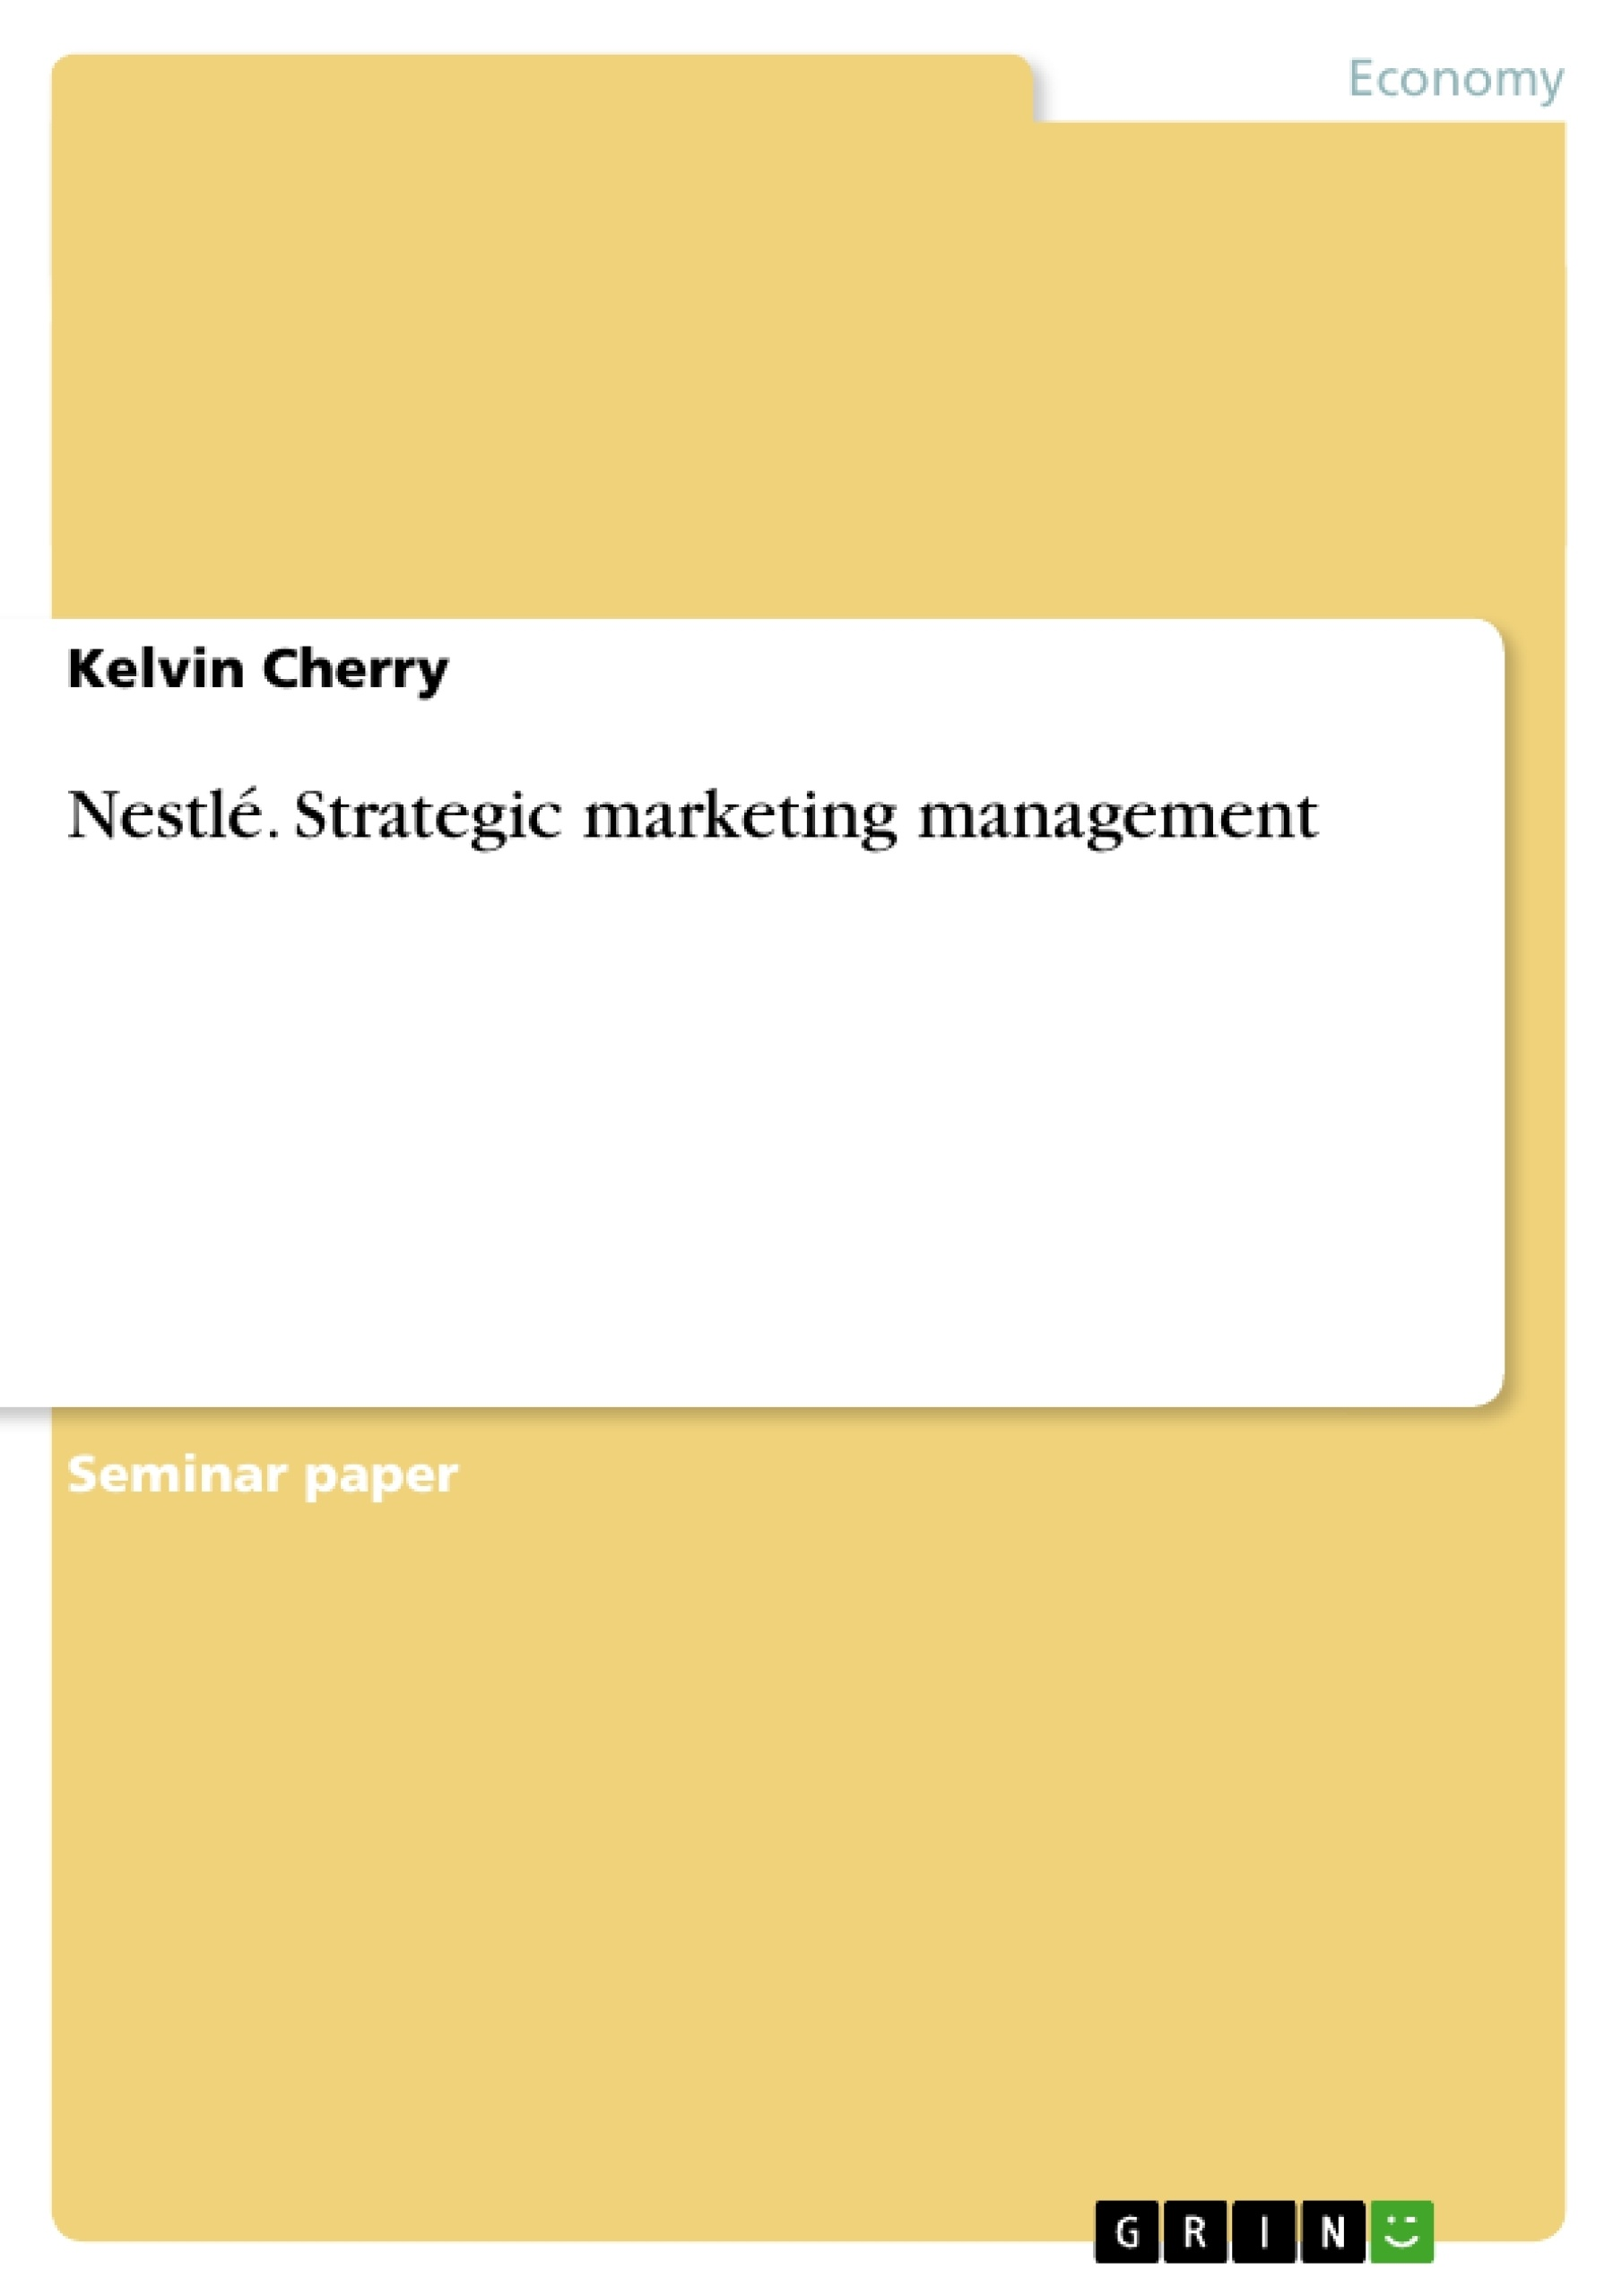 Title: Nestlé. Strategic marketing management